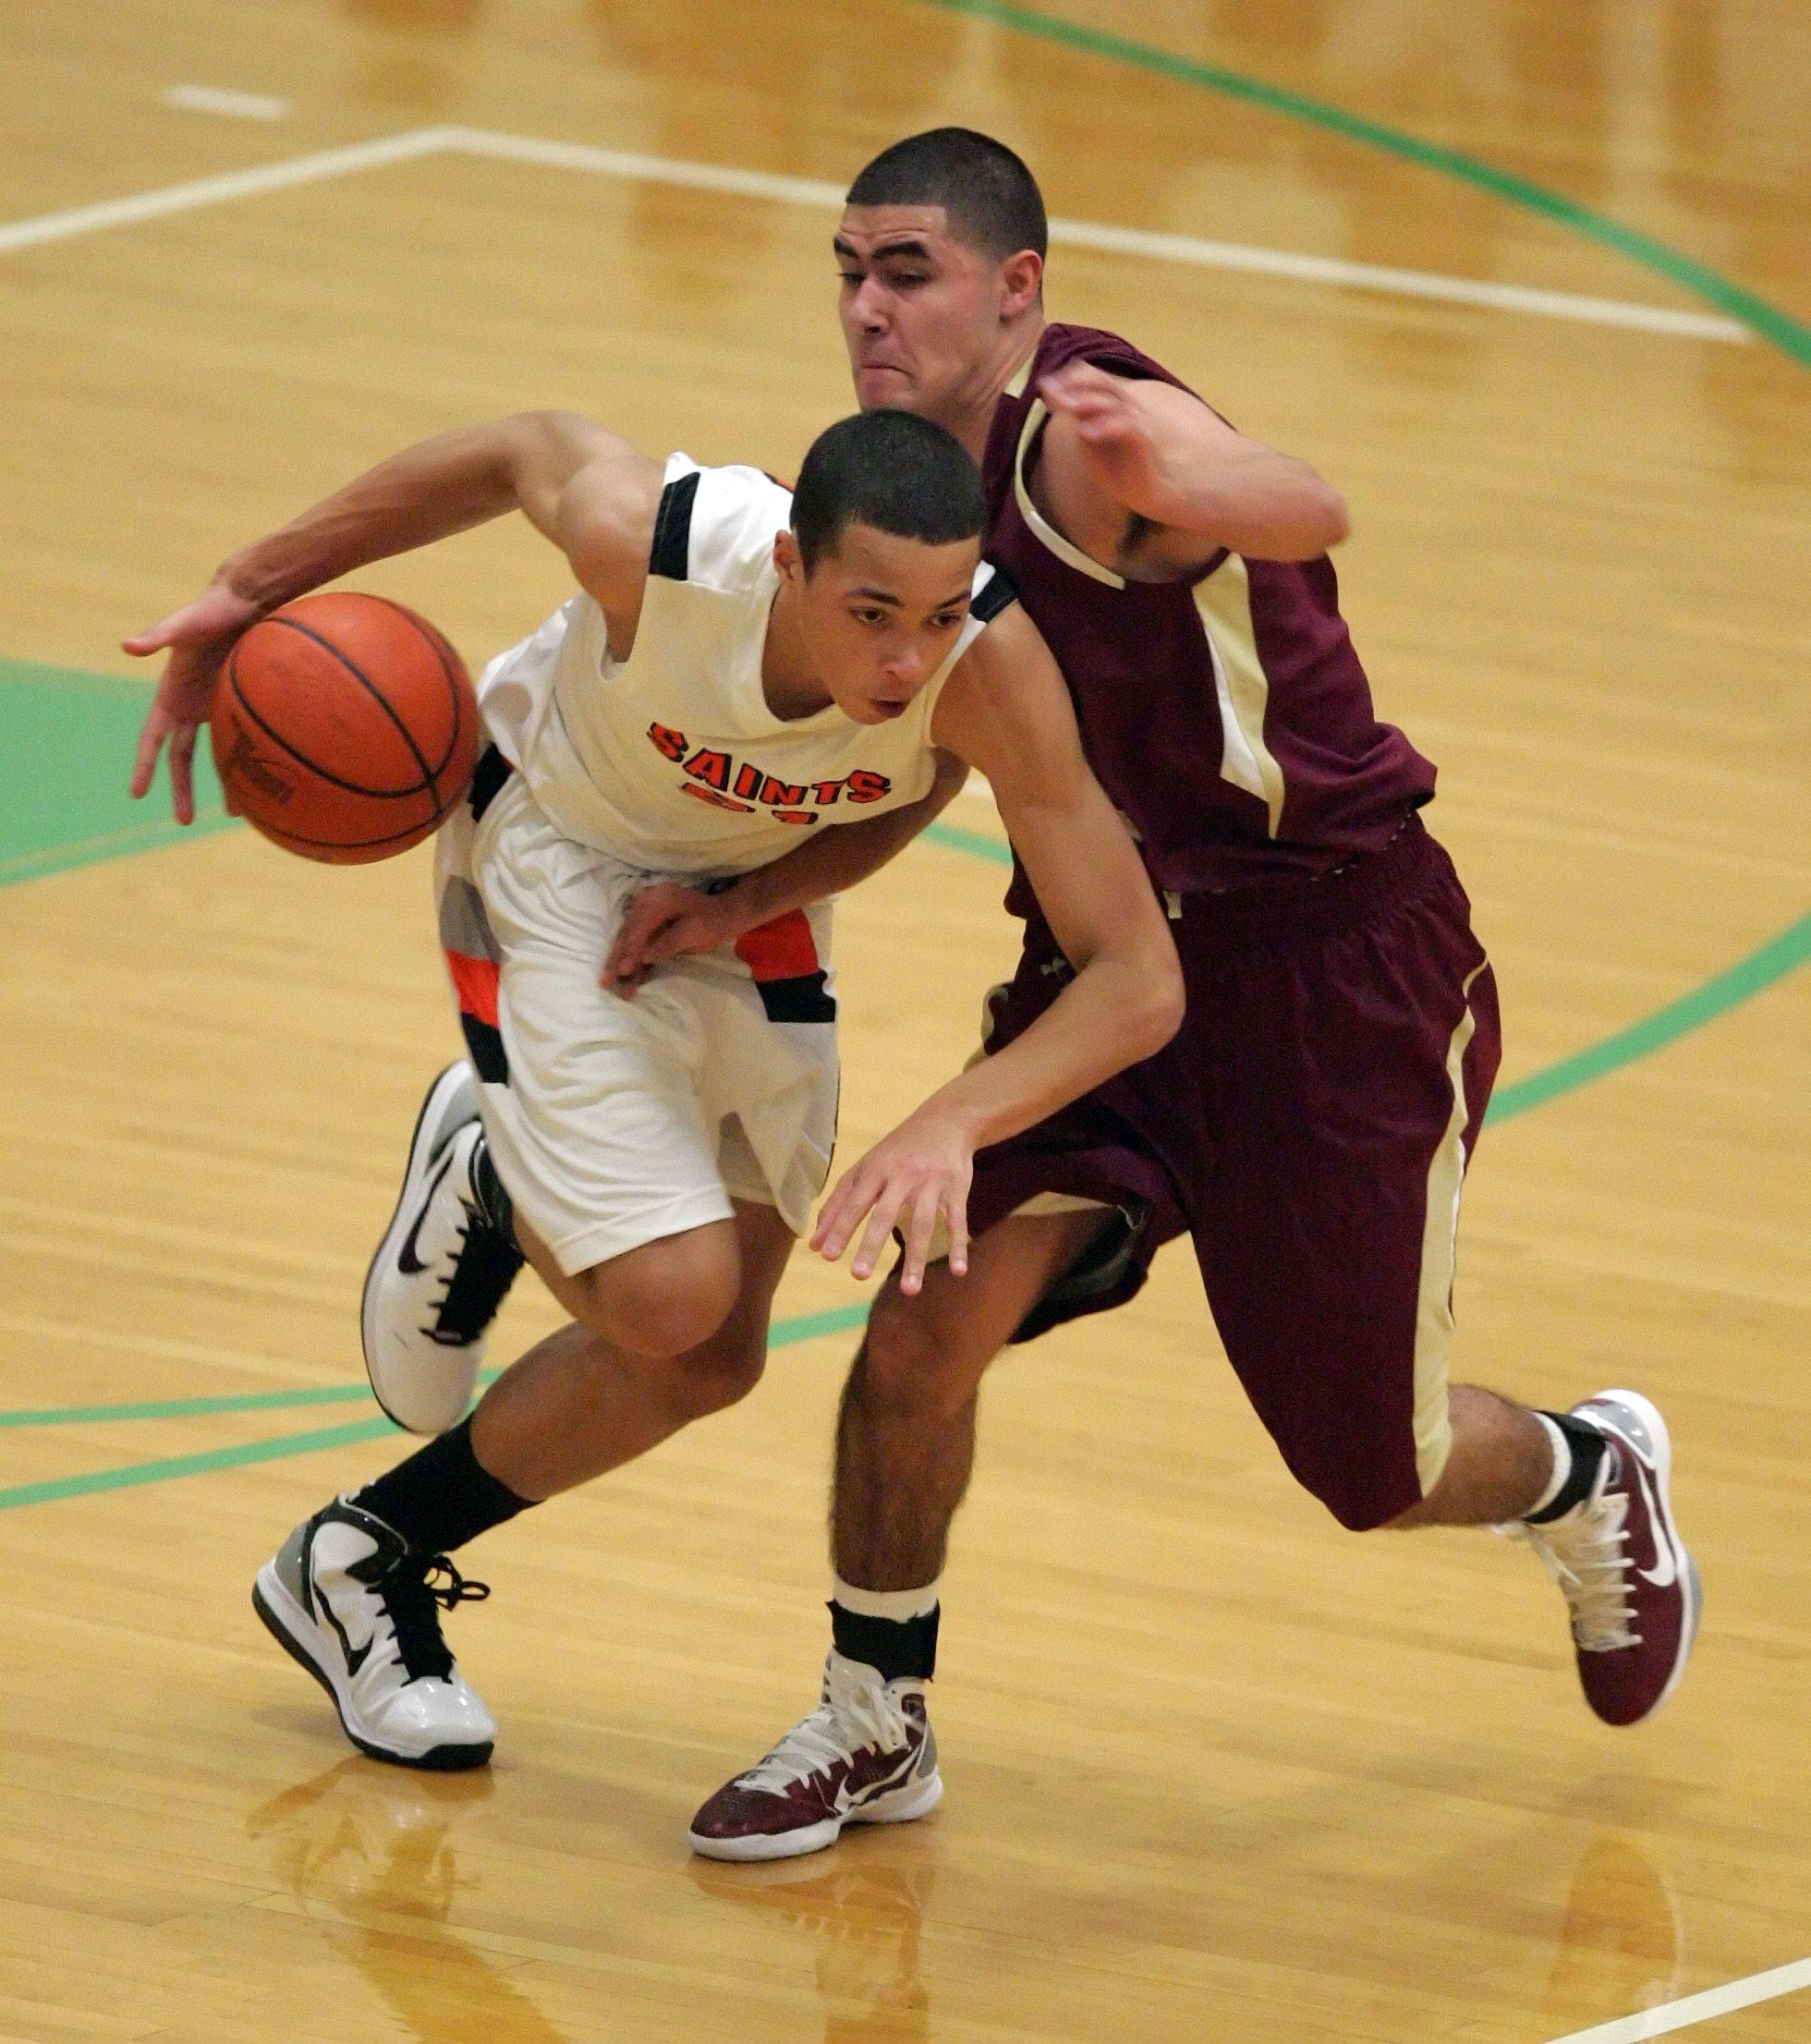 Images from the St. Charles East vs. St. Ignatius boys basketball game at York Wednesday, December 29, 2010 in Elmhurst.